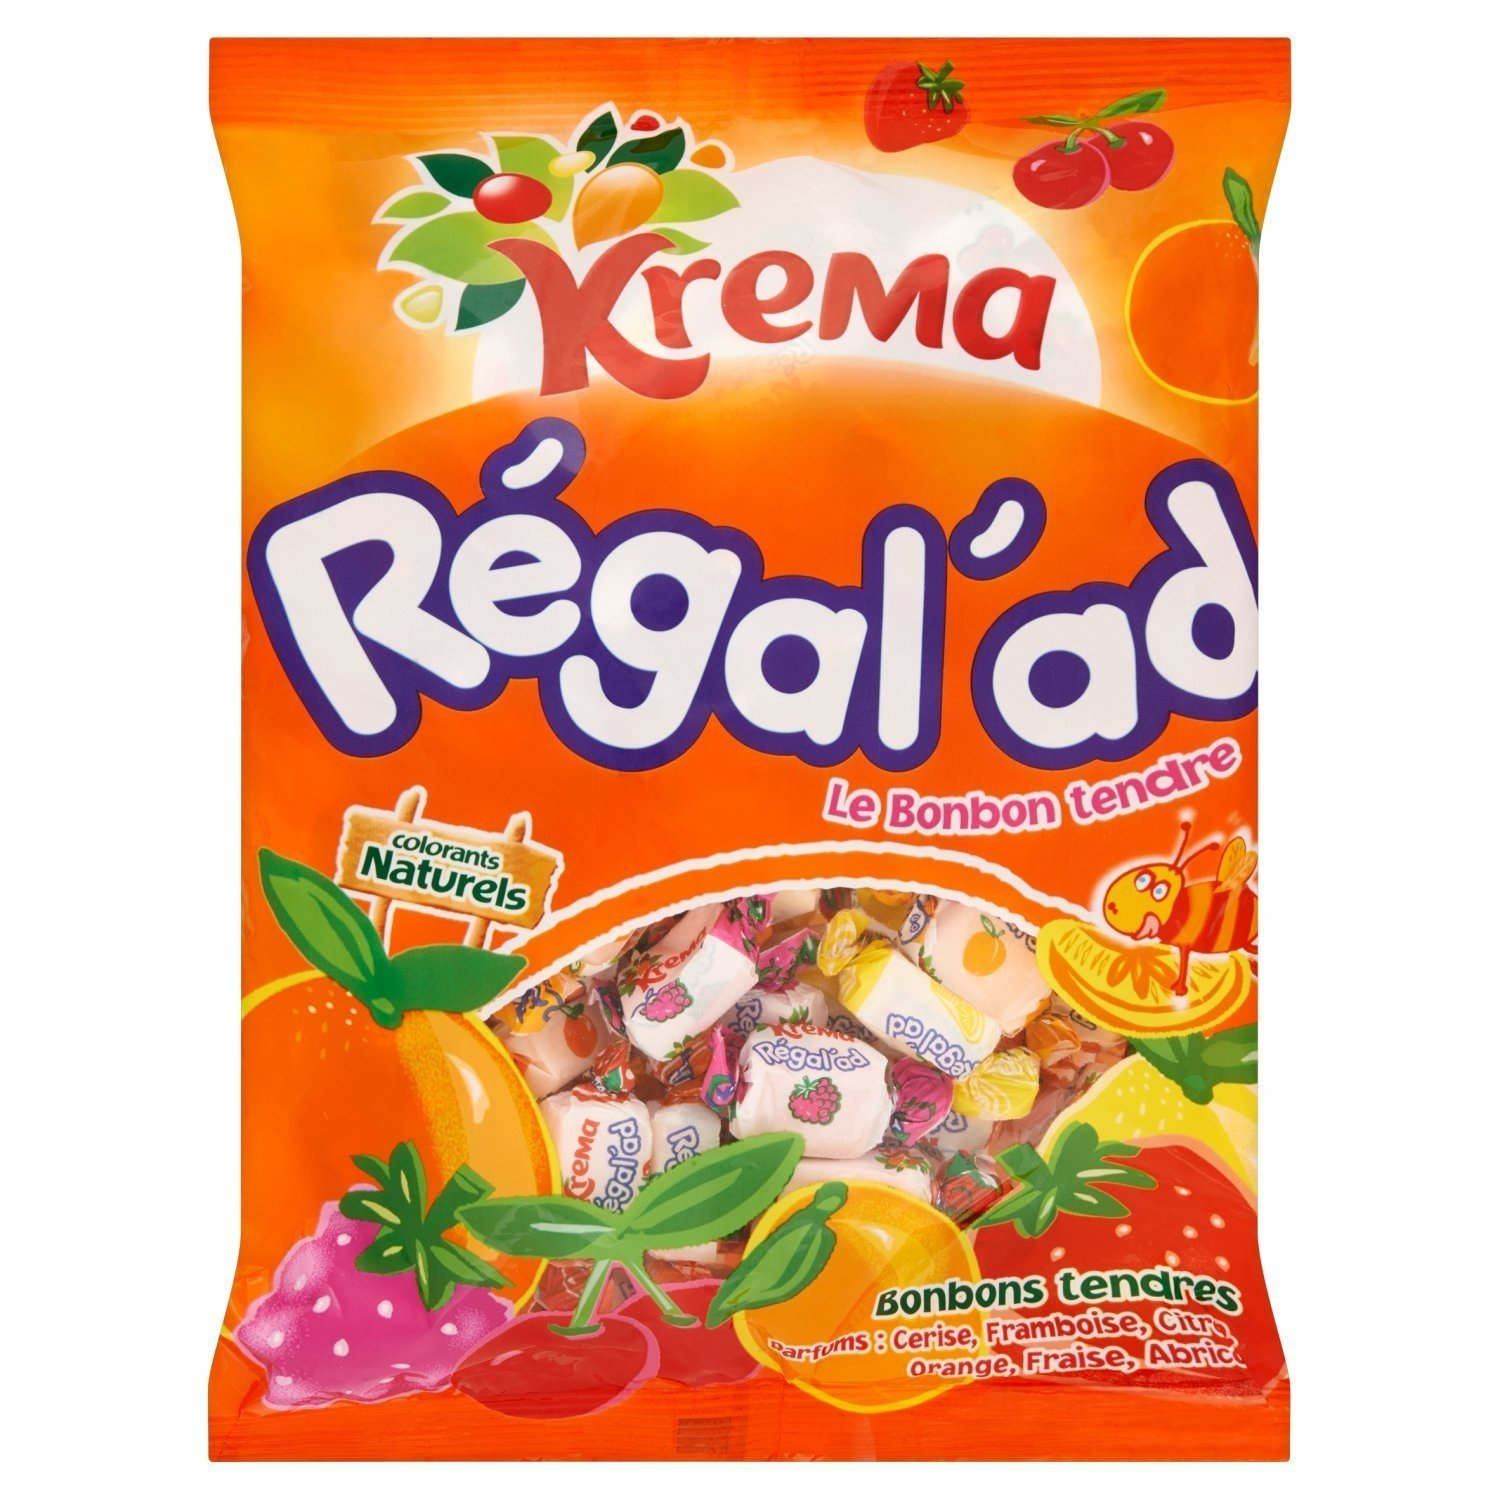 Krema Regal'ad Fruit Chewy Candy From France 150 Gr (2 PACK) by Krema